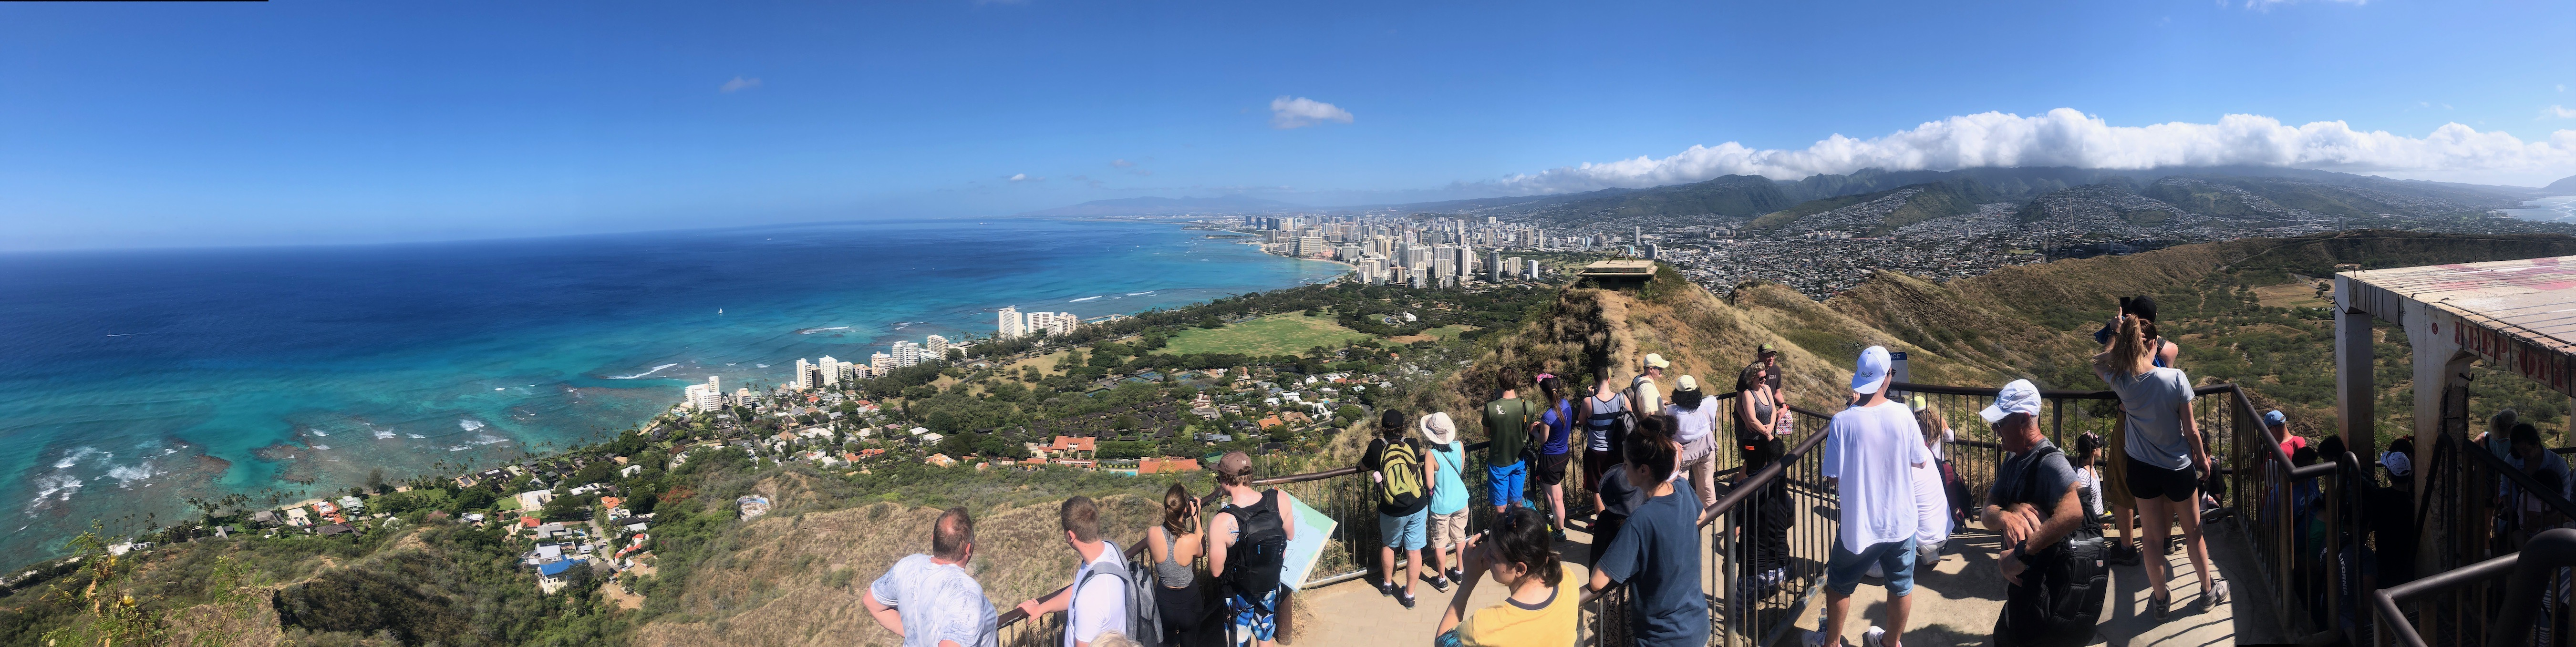 Top of Diamond Head Hike Oahu